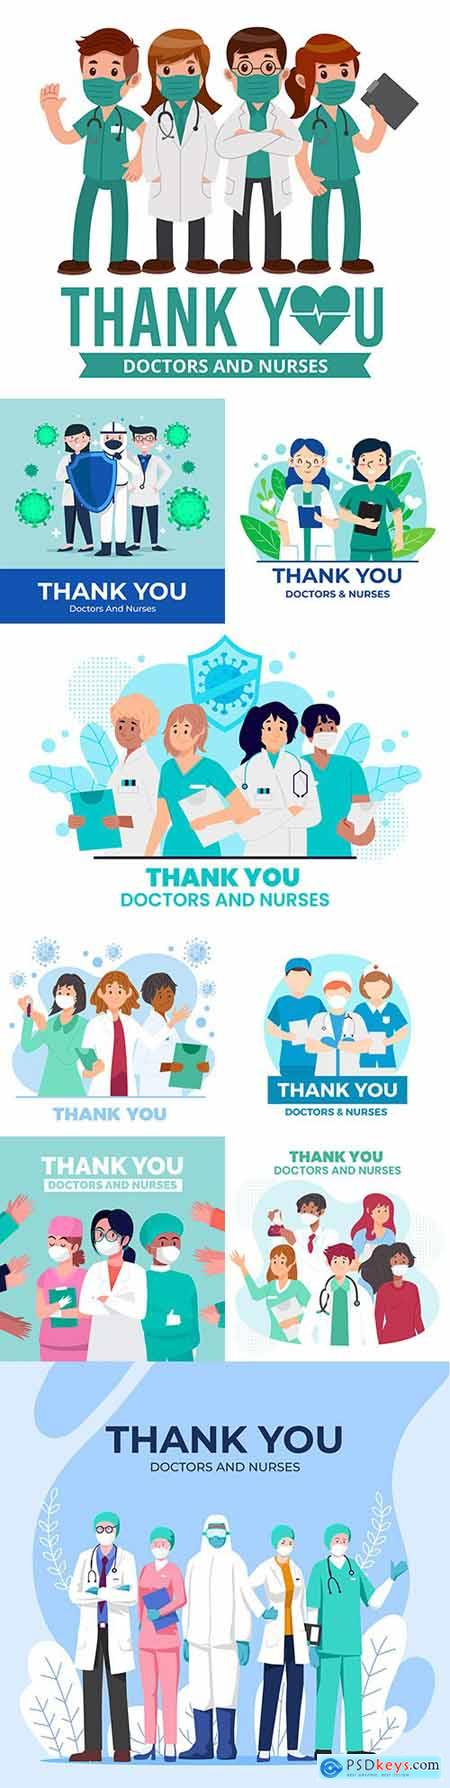 Thank you doctor and nurses medical design illustrations